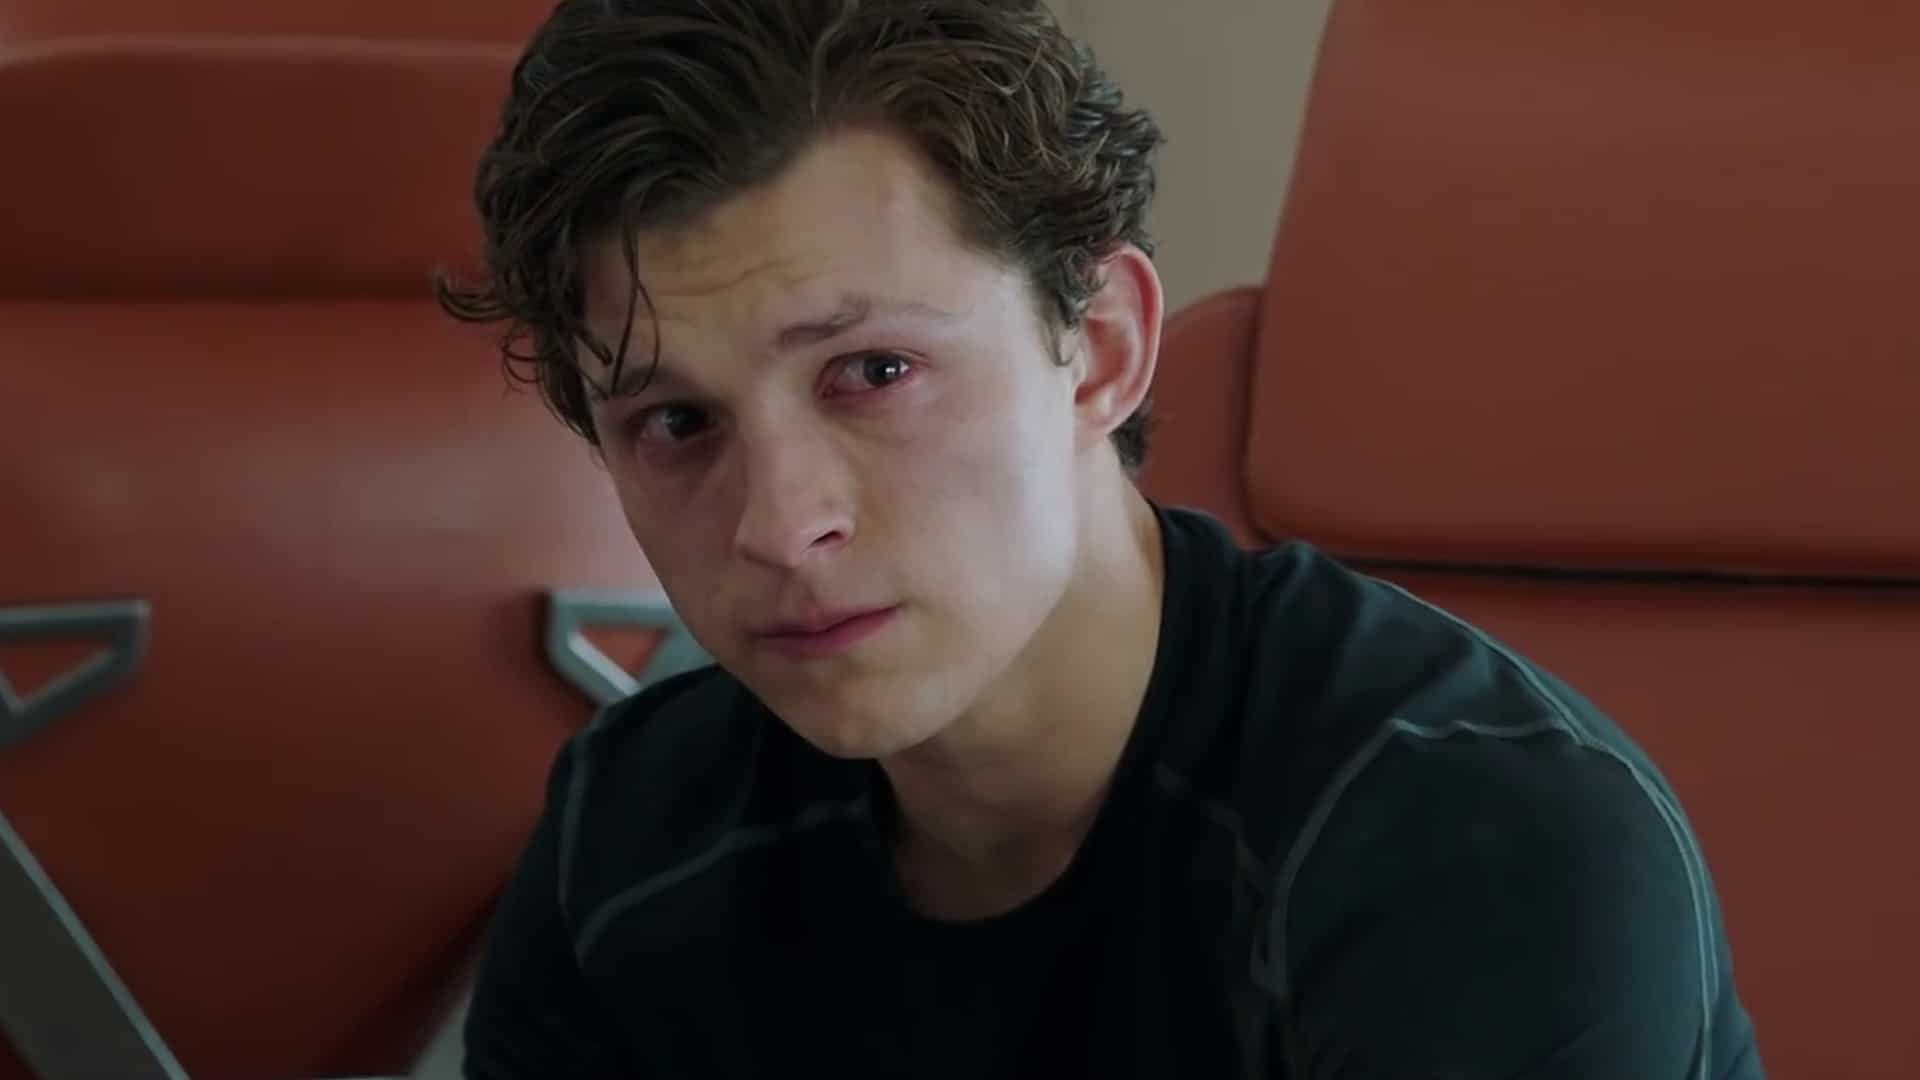 spider-man far from home crying